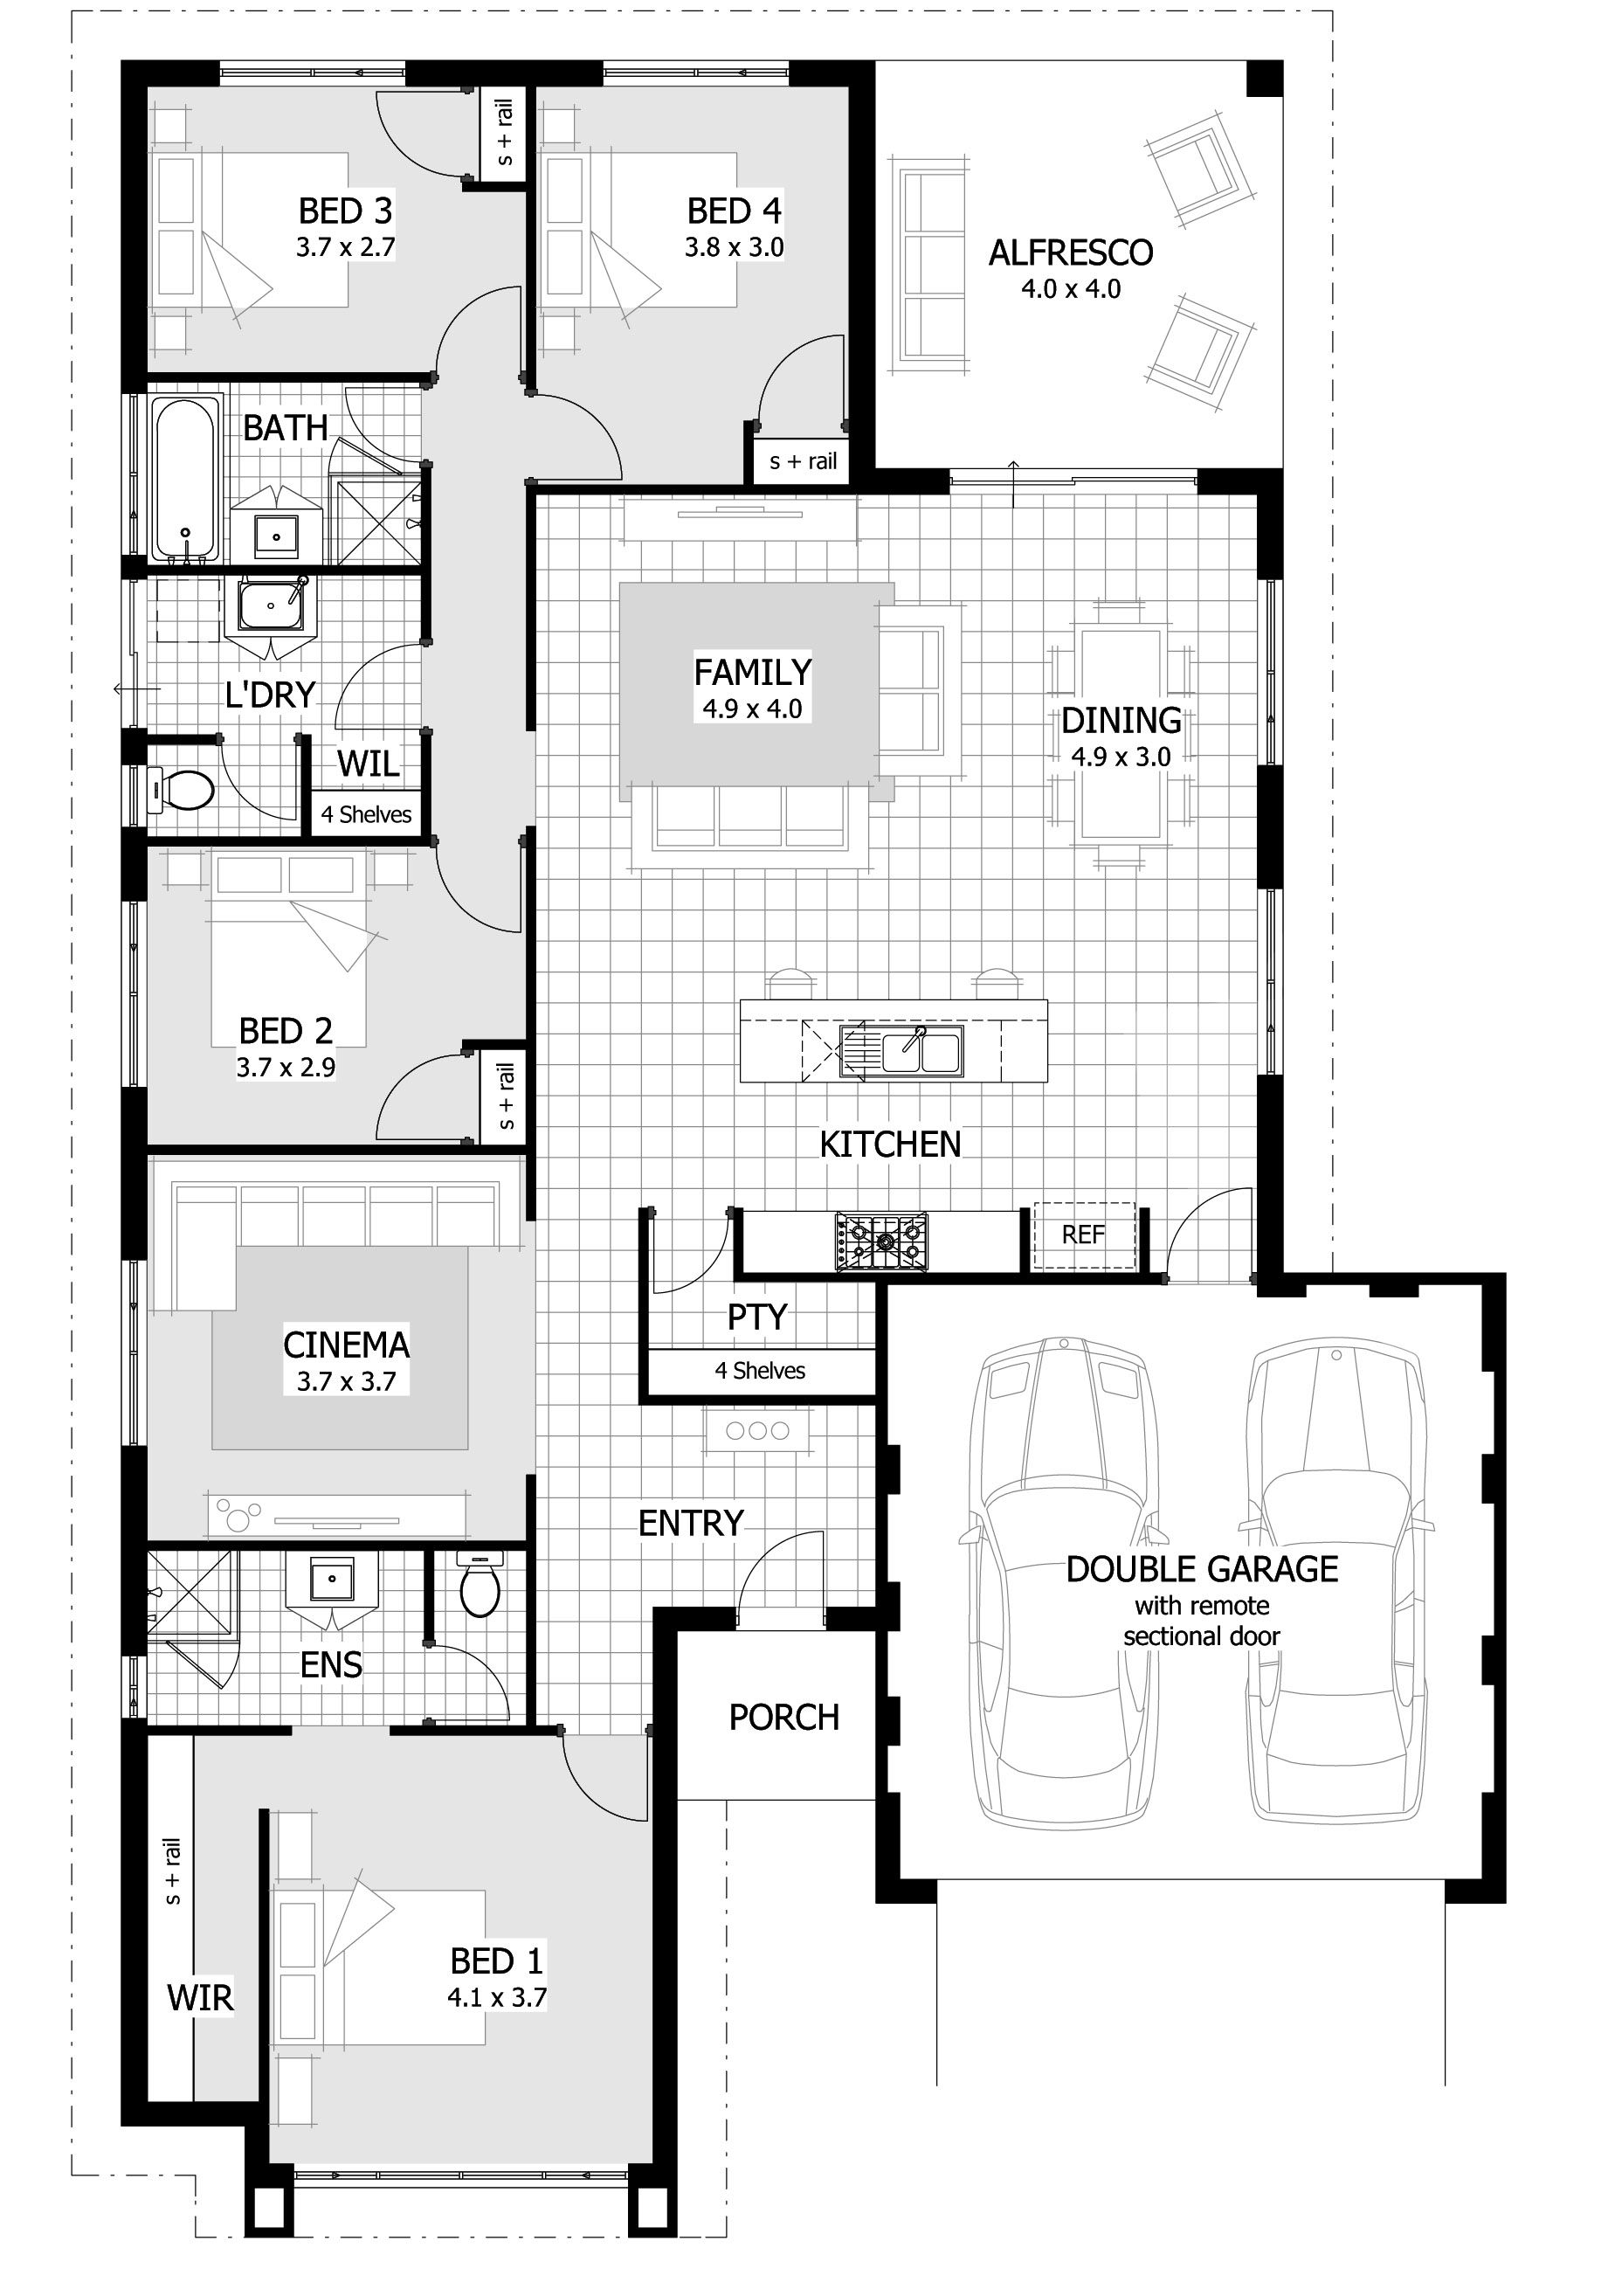 Rio 0 Jpg 1841 2628 Condo Floor Plans 4 Bedroom House Plans Bedroom House Plans